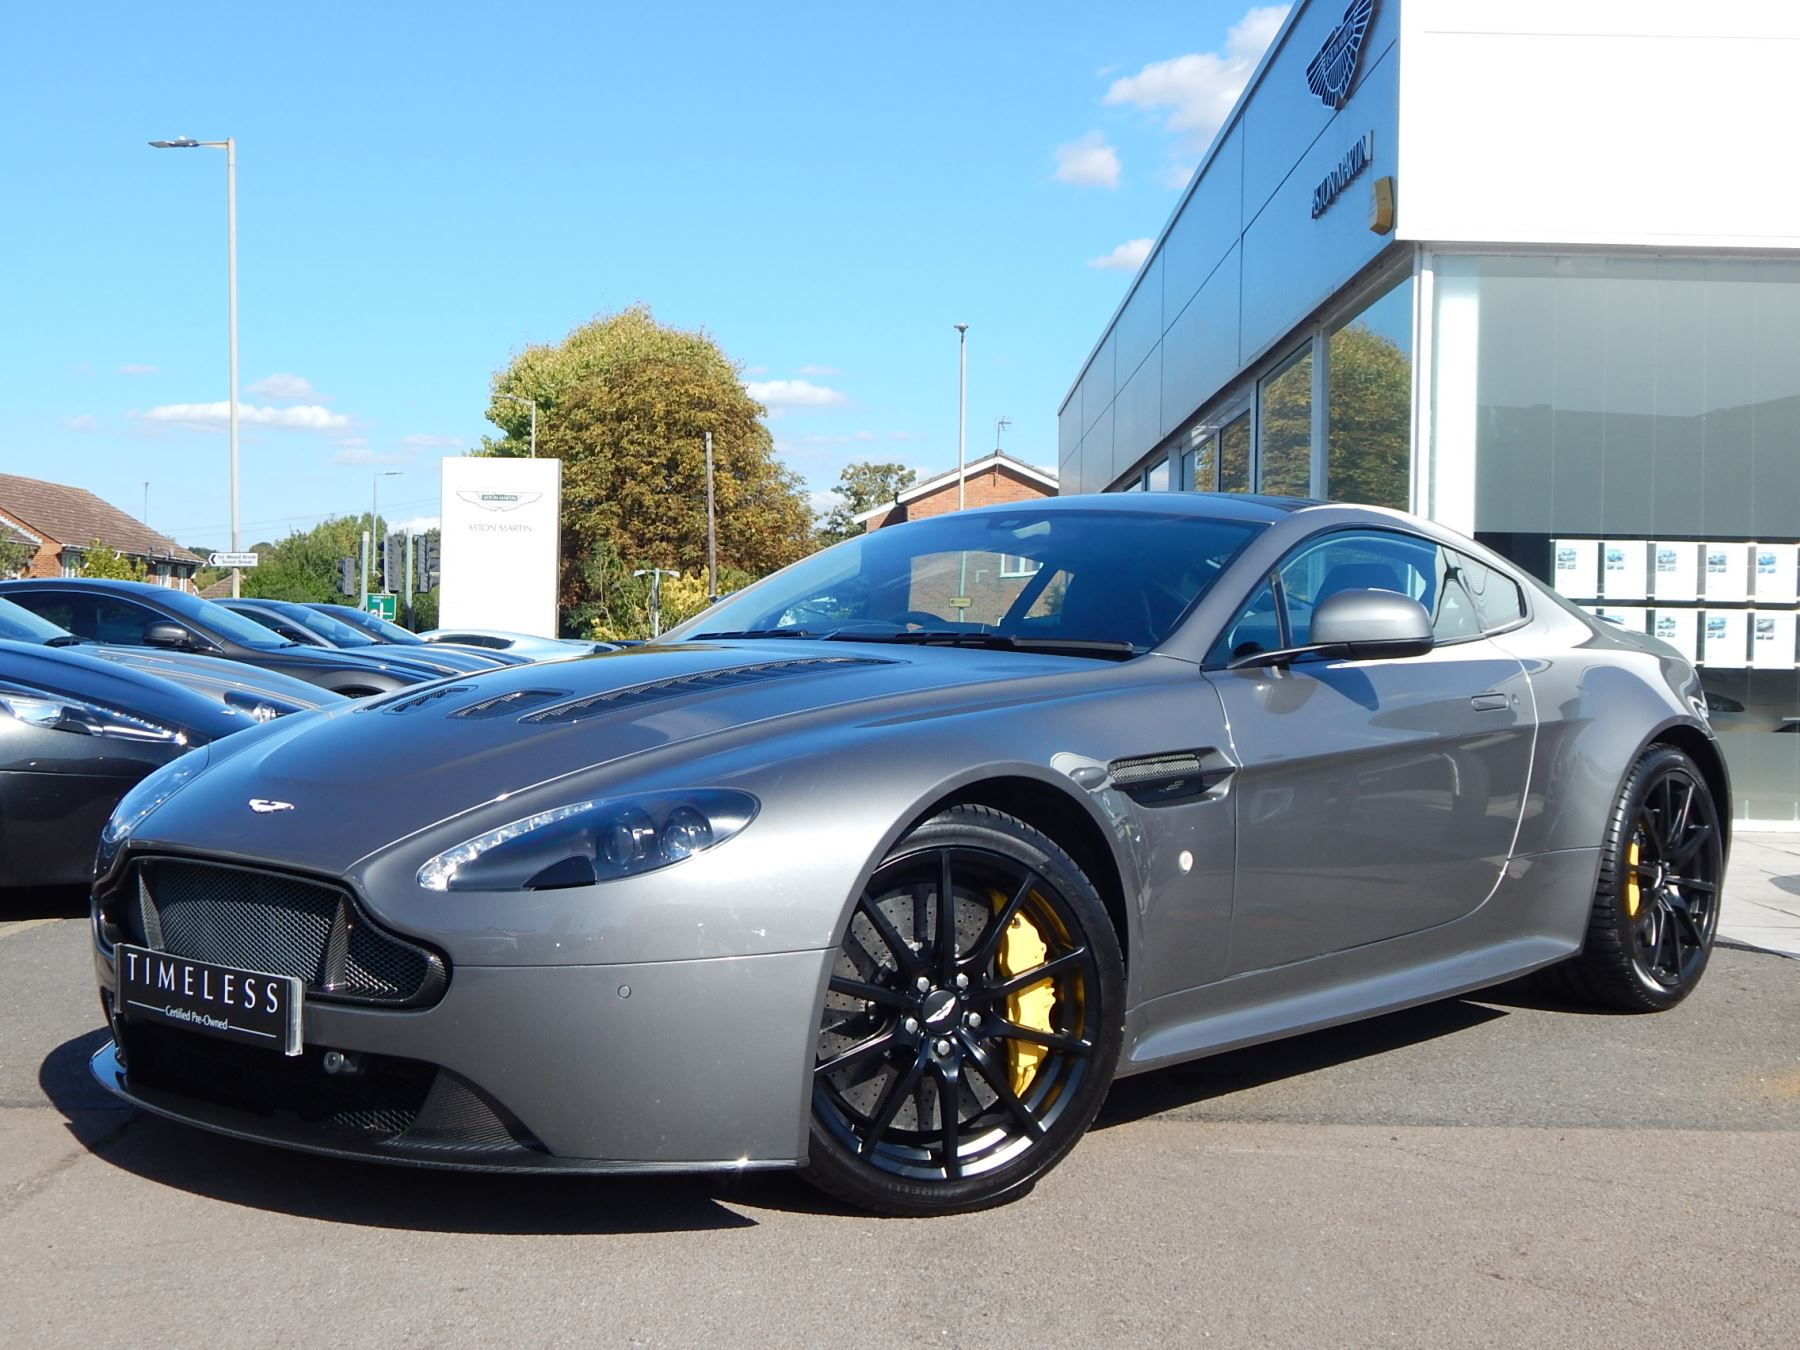 Used Aston Martin Grey Cars For Sale Grange - Used aston martin for sale